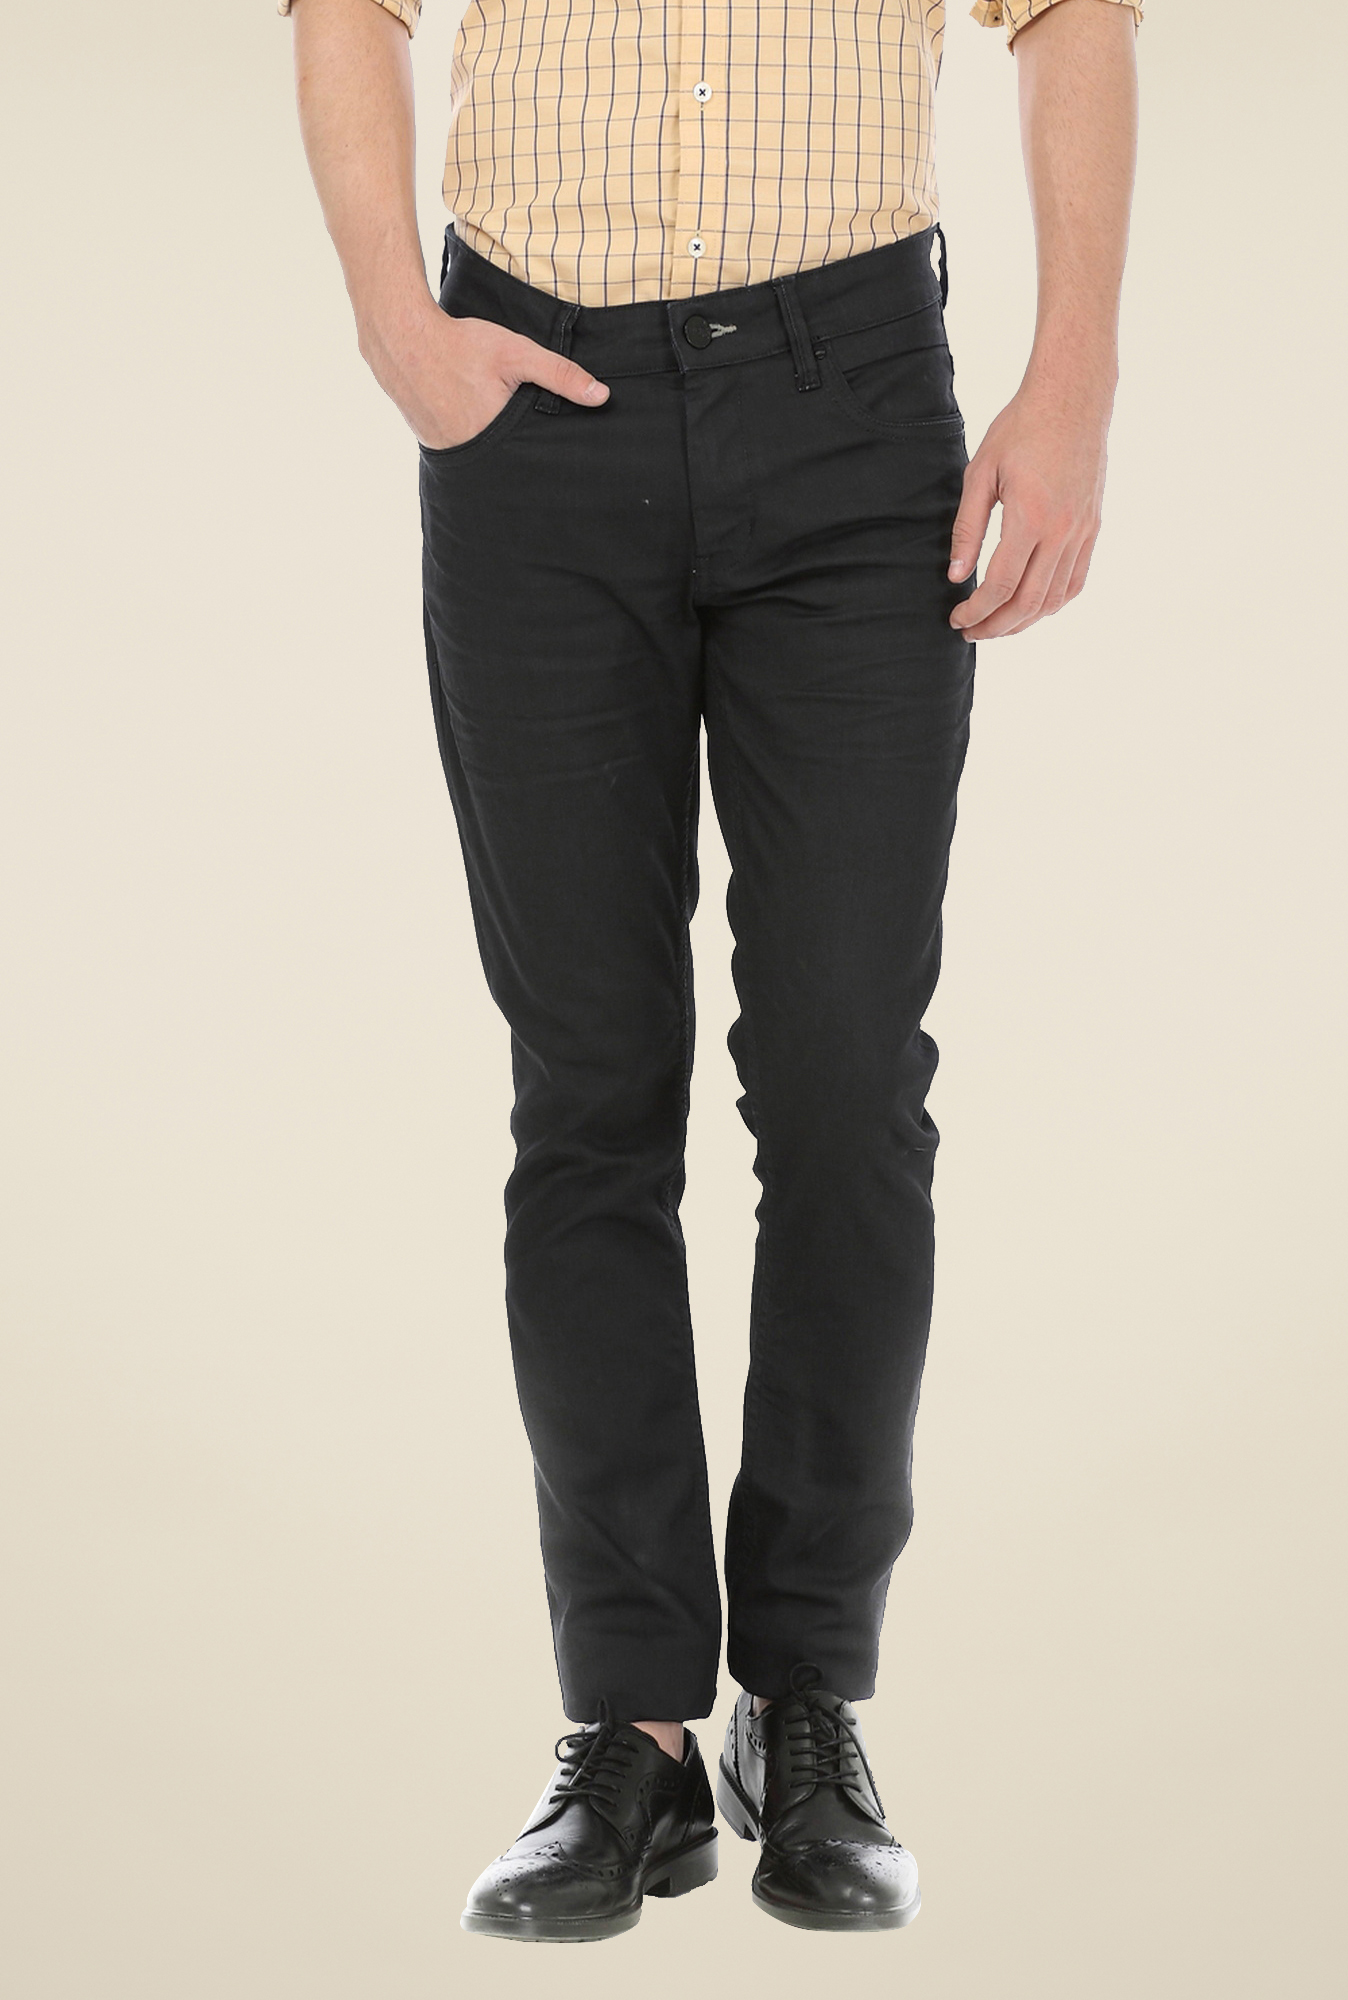 Basics Black Lightly Washed Jeans